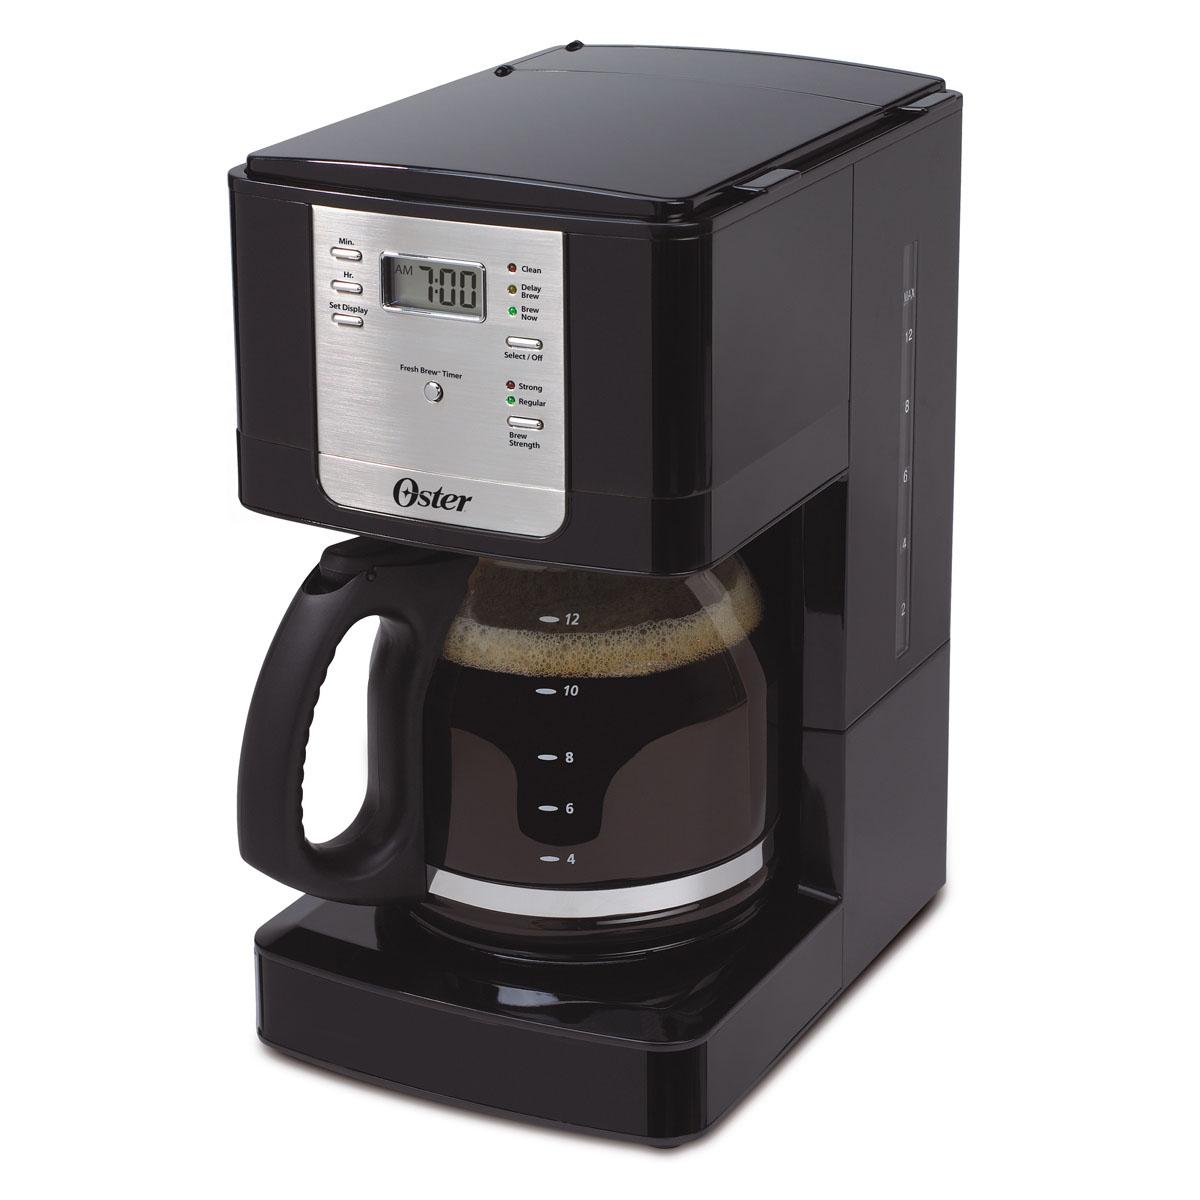 Oster 12 Cup Programmable Coffee Maker 3312 33 Parts